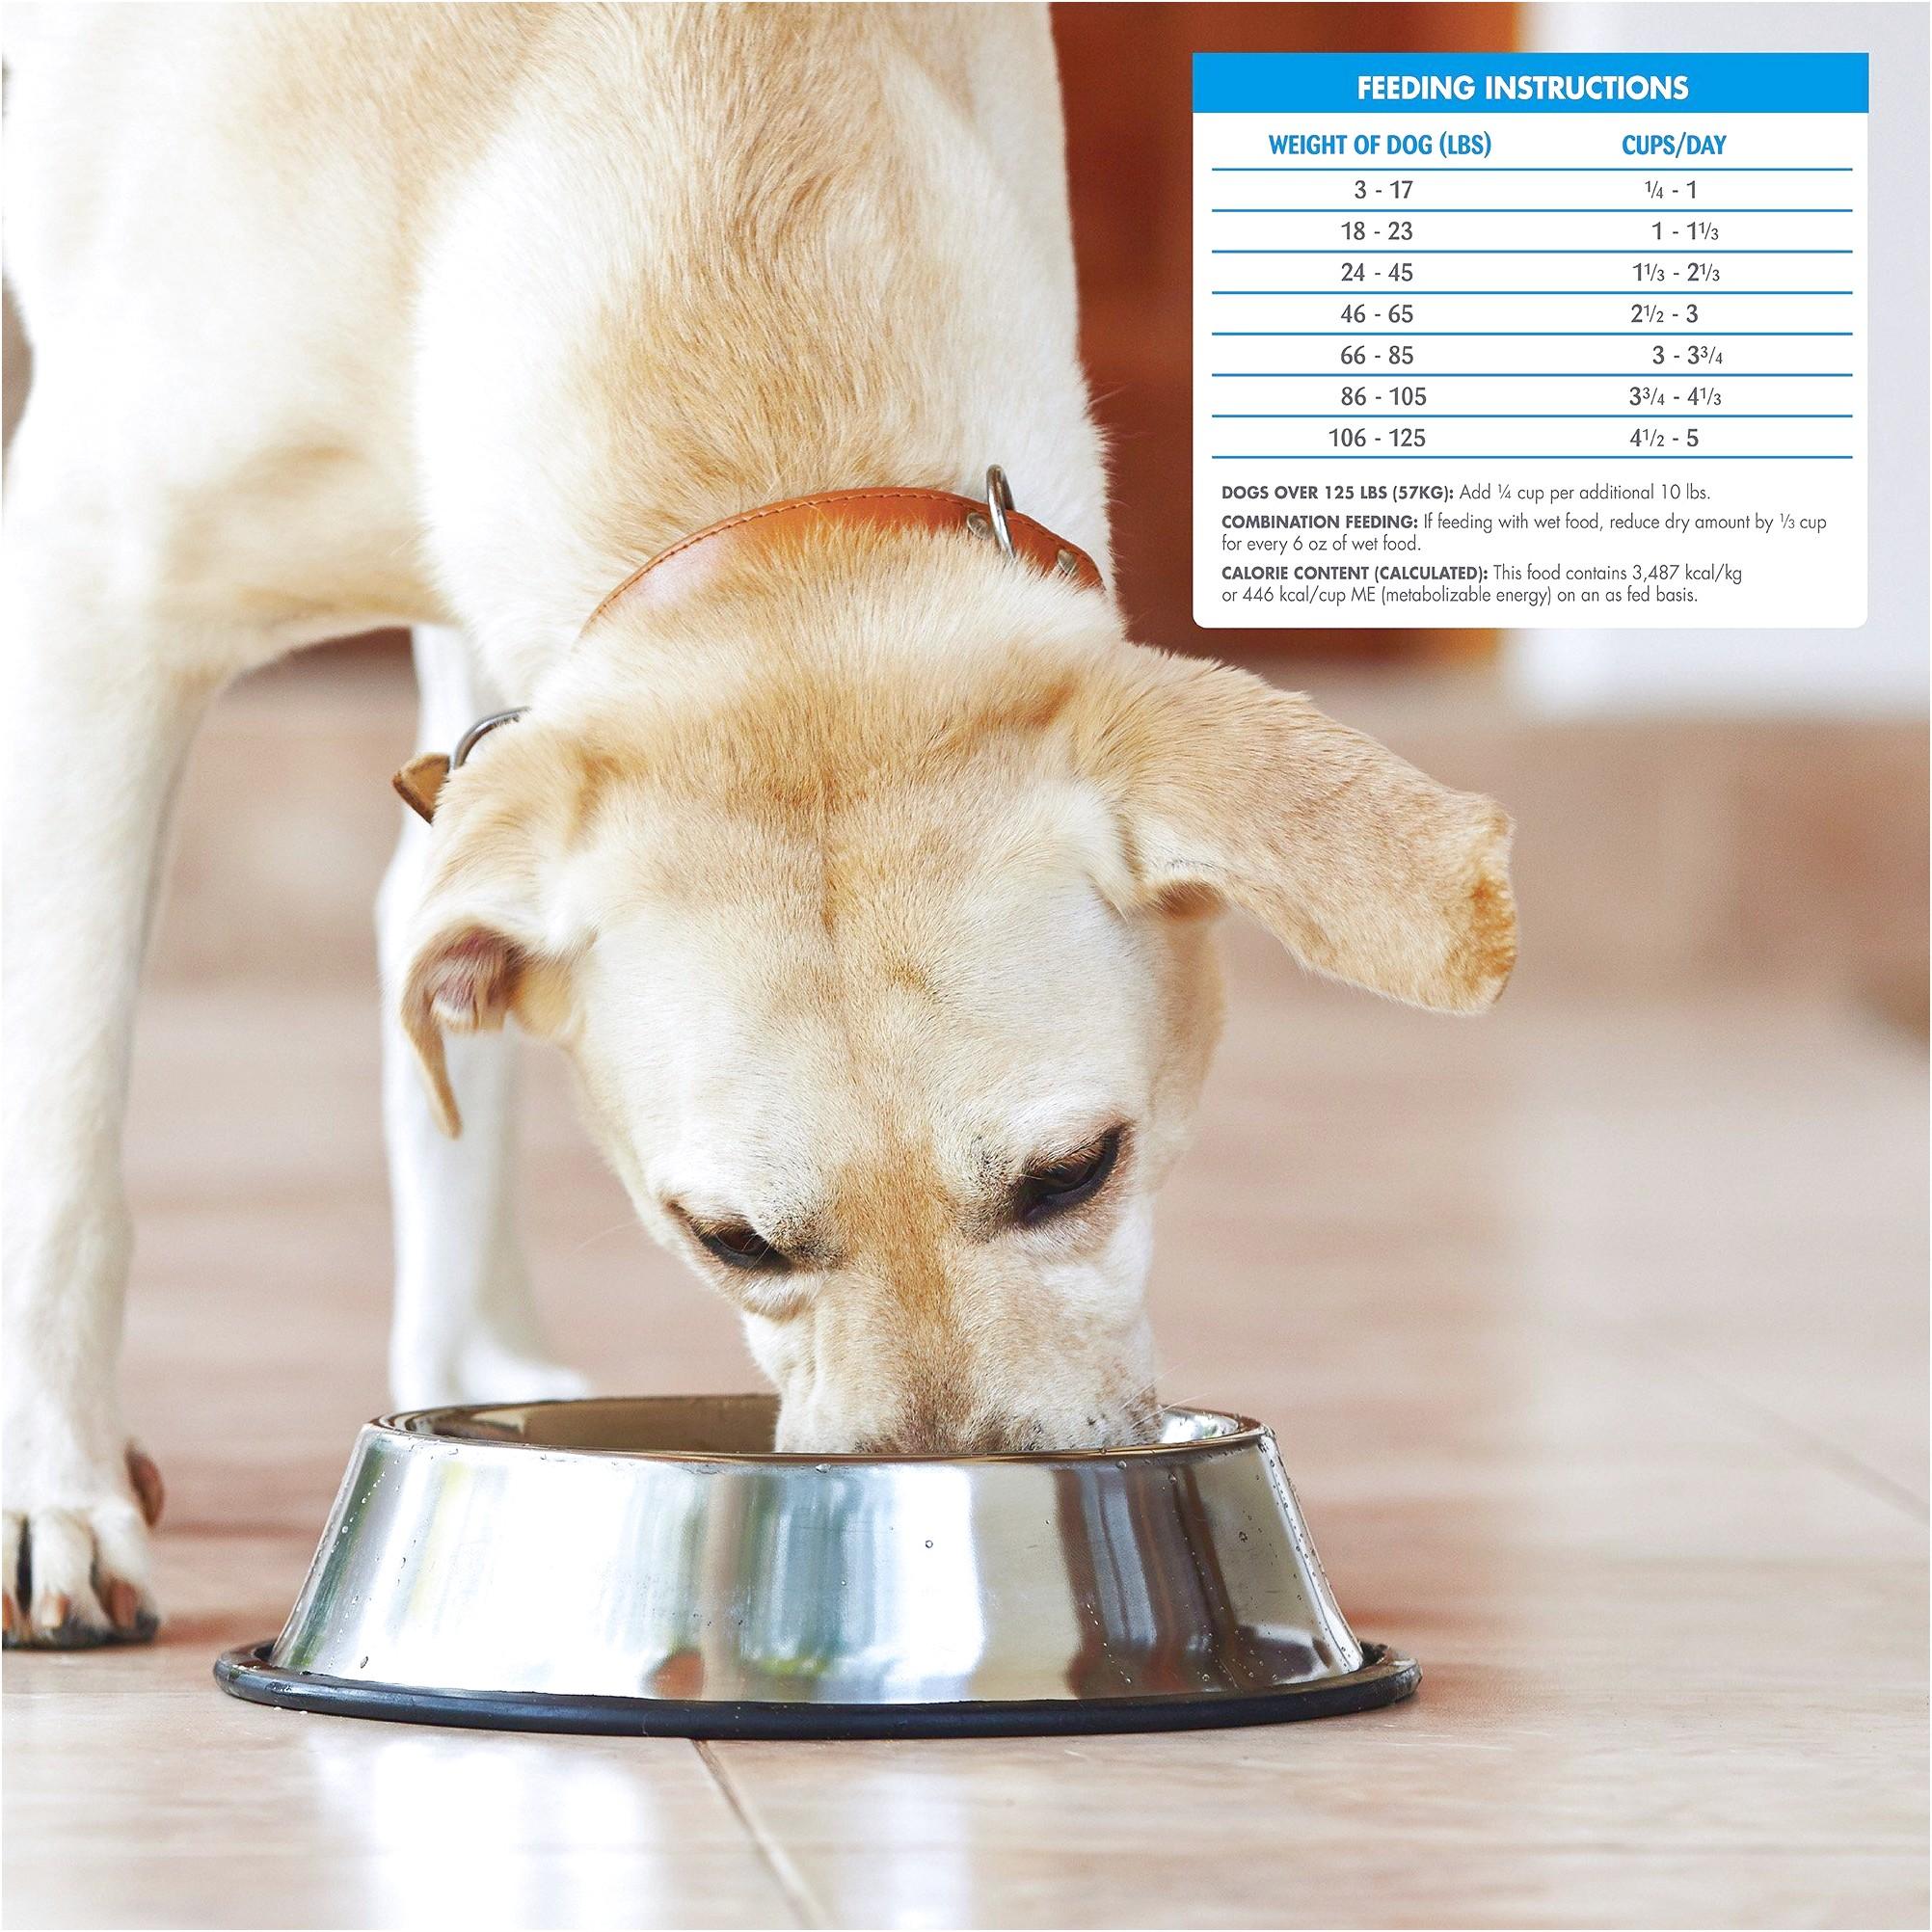 best limited ingredient dog food for small dogs